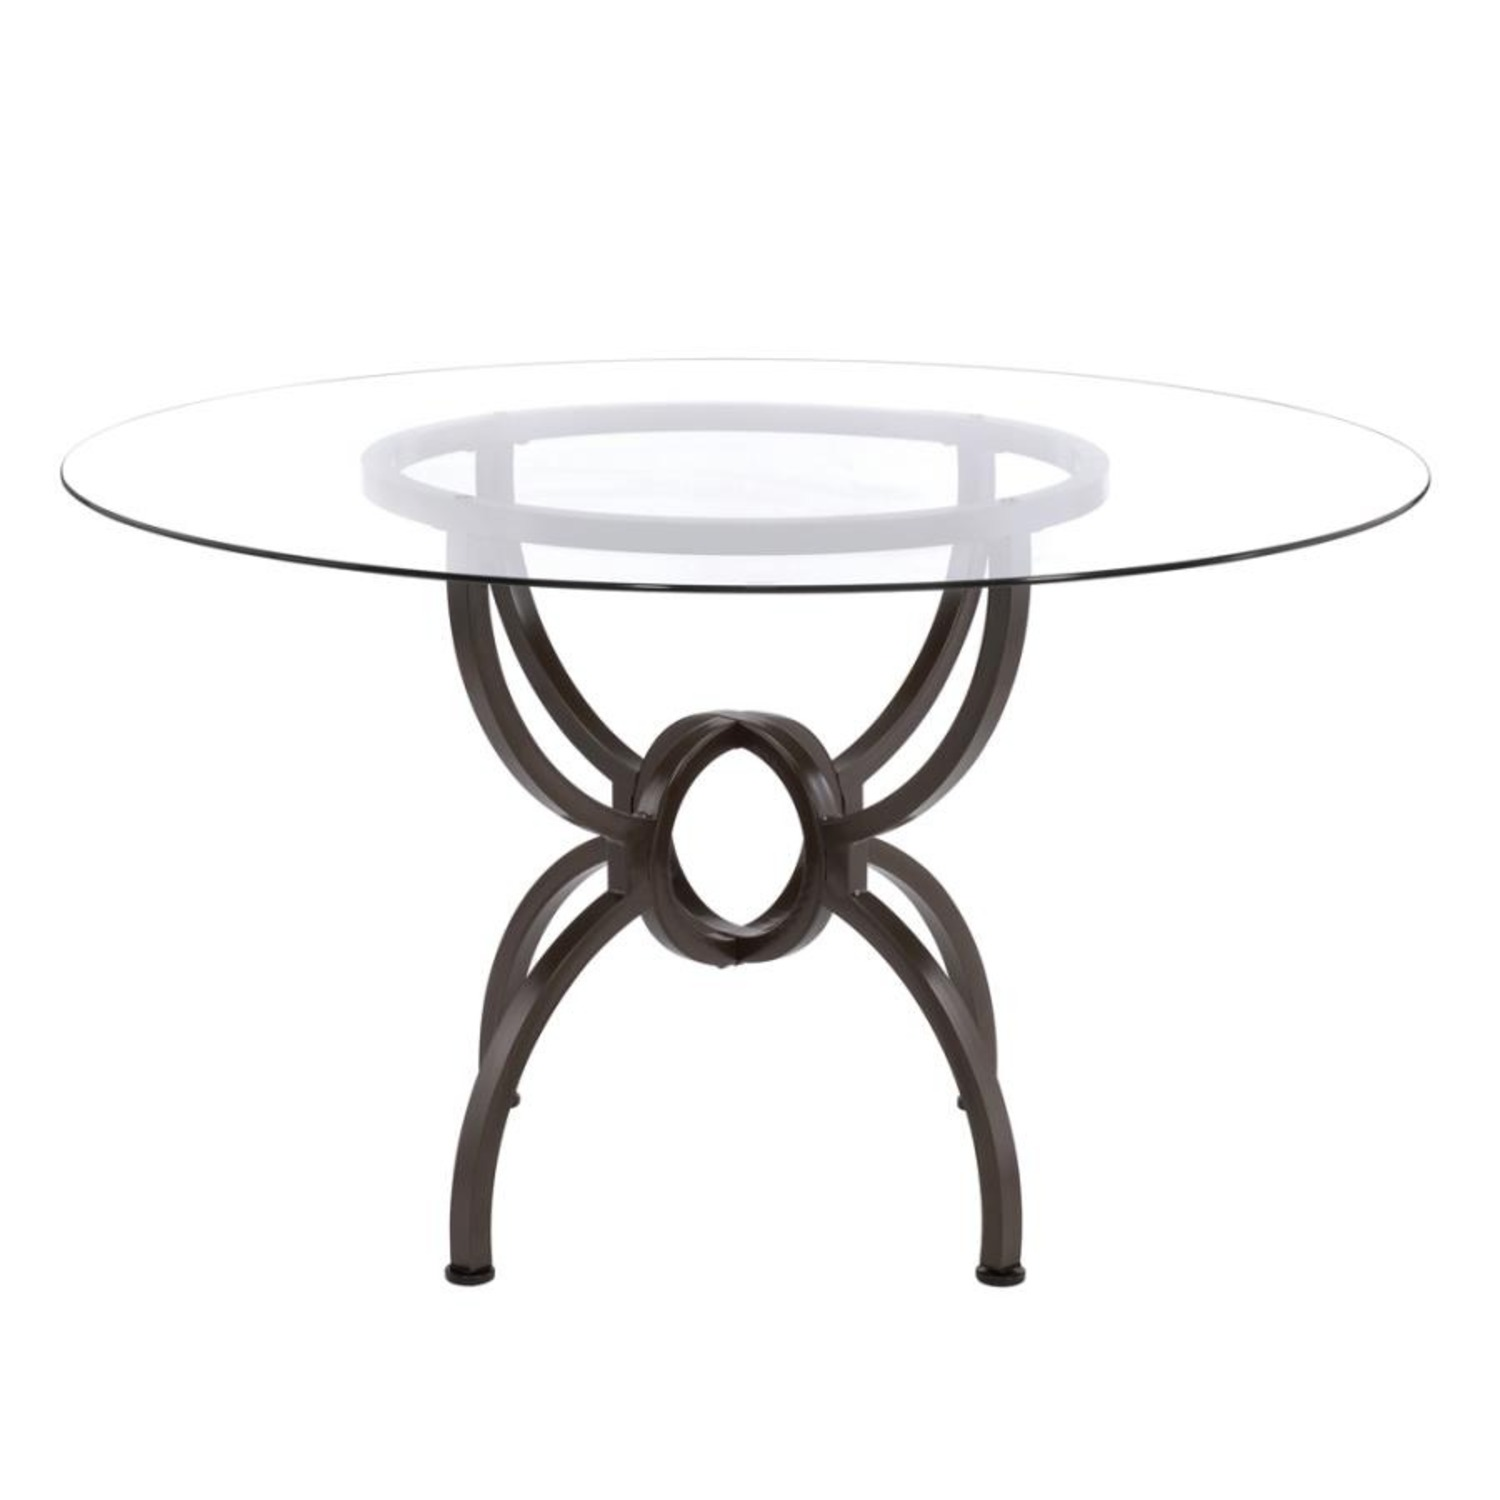 Dining Table In Gunmetal Base W/ Clear Glass Top - image-1